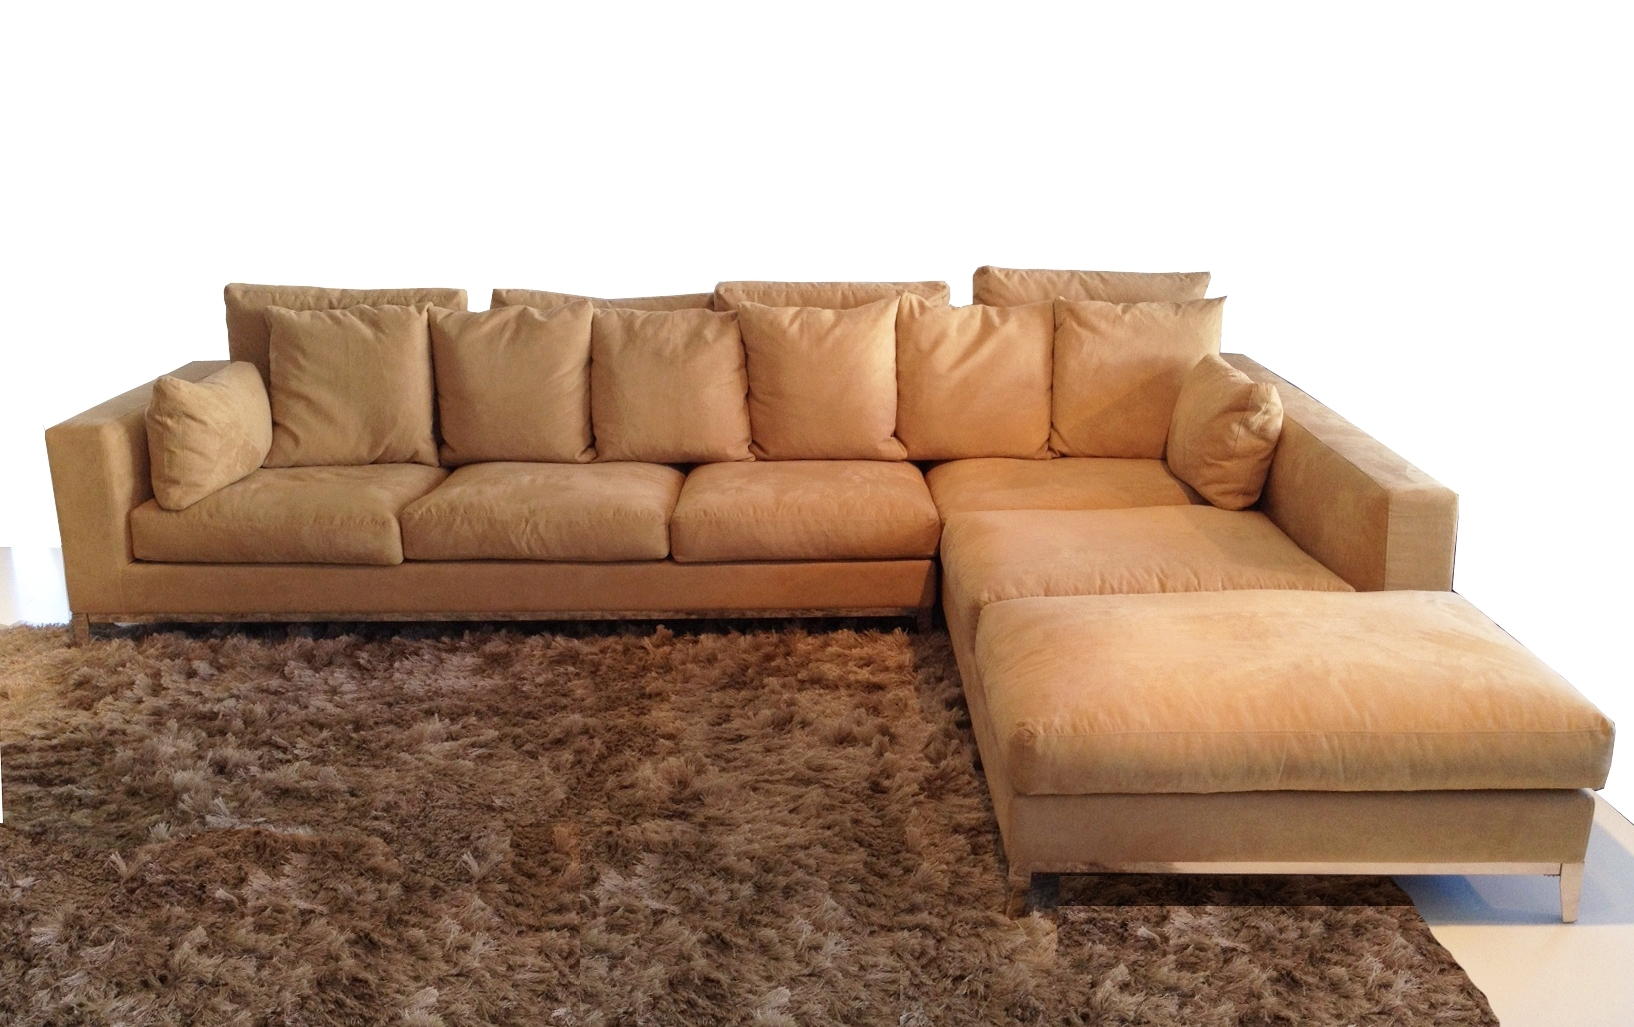 Newest Extra Large Sectional Sofas – Decofurnish Pertaining To Long Chaise Sofas (View 6 of 15)